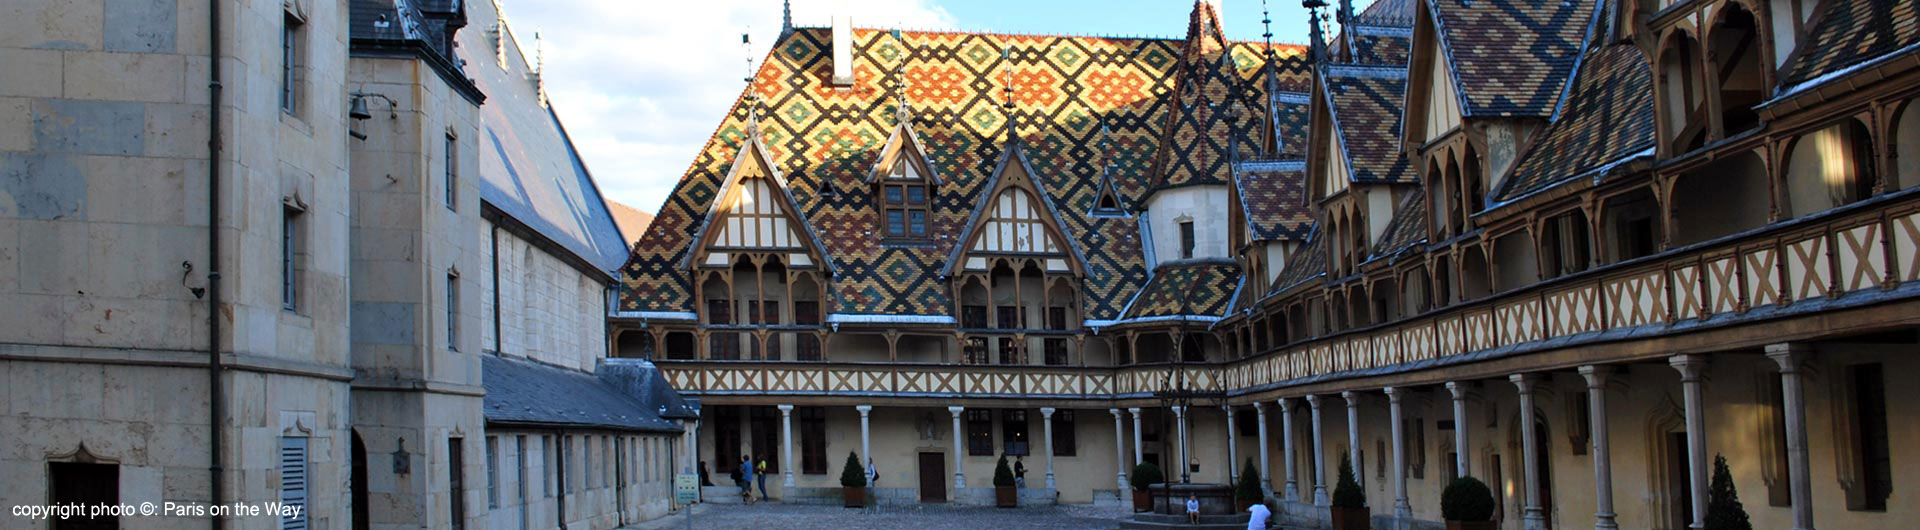 THE HOSPICES DE BEAUNE A CHARITY HOSPITAL